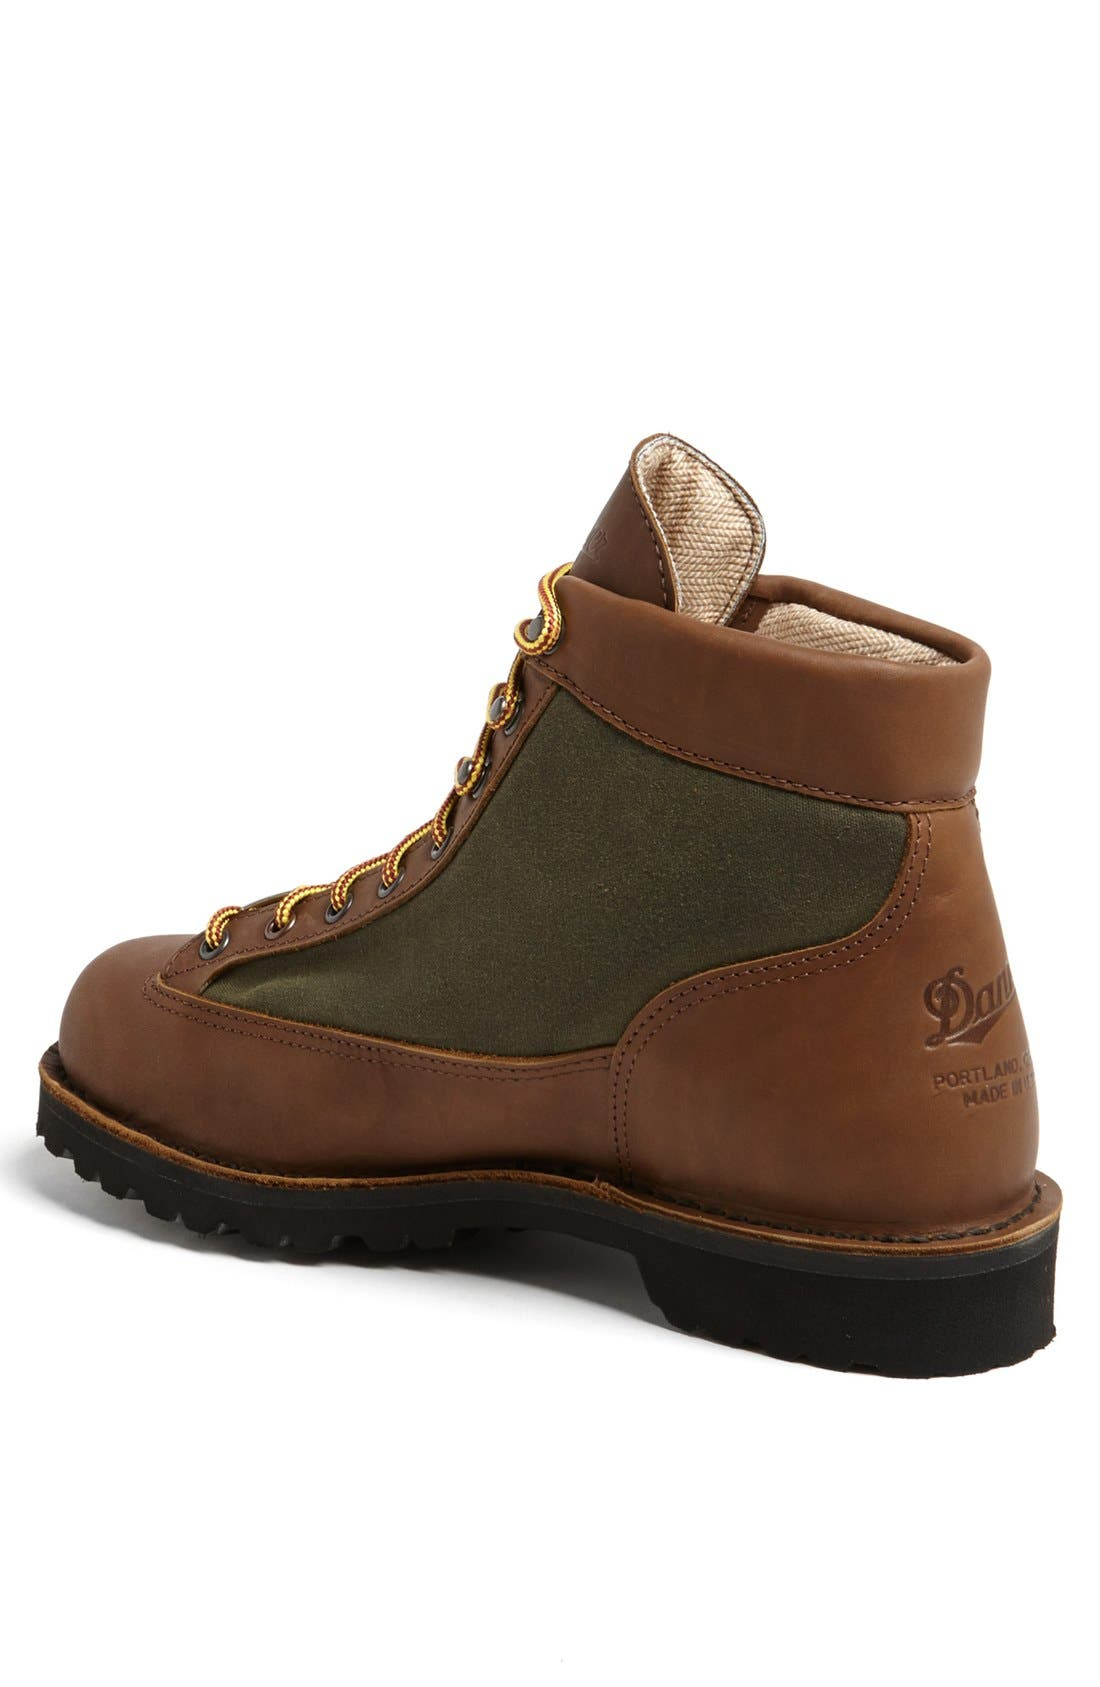 'Light Timber' Round Toe Boot,                             Alternate thumbnail 3, color,                             200